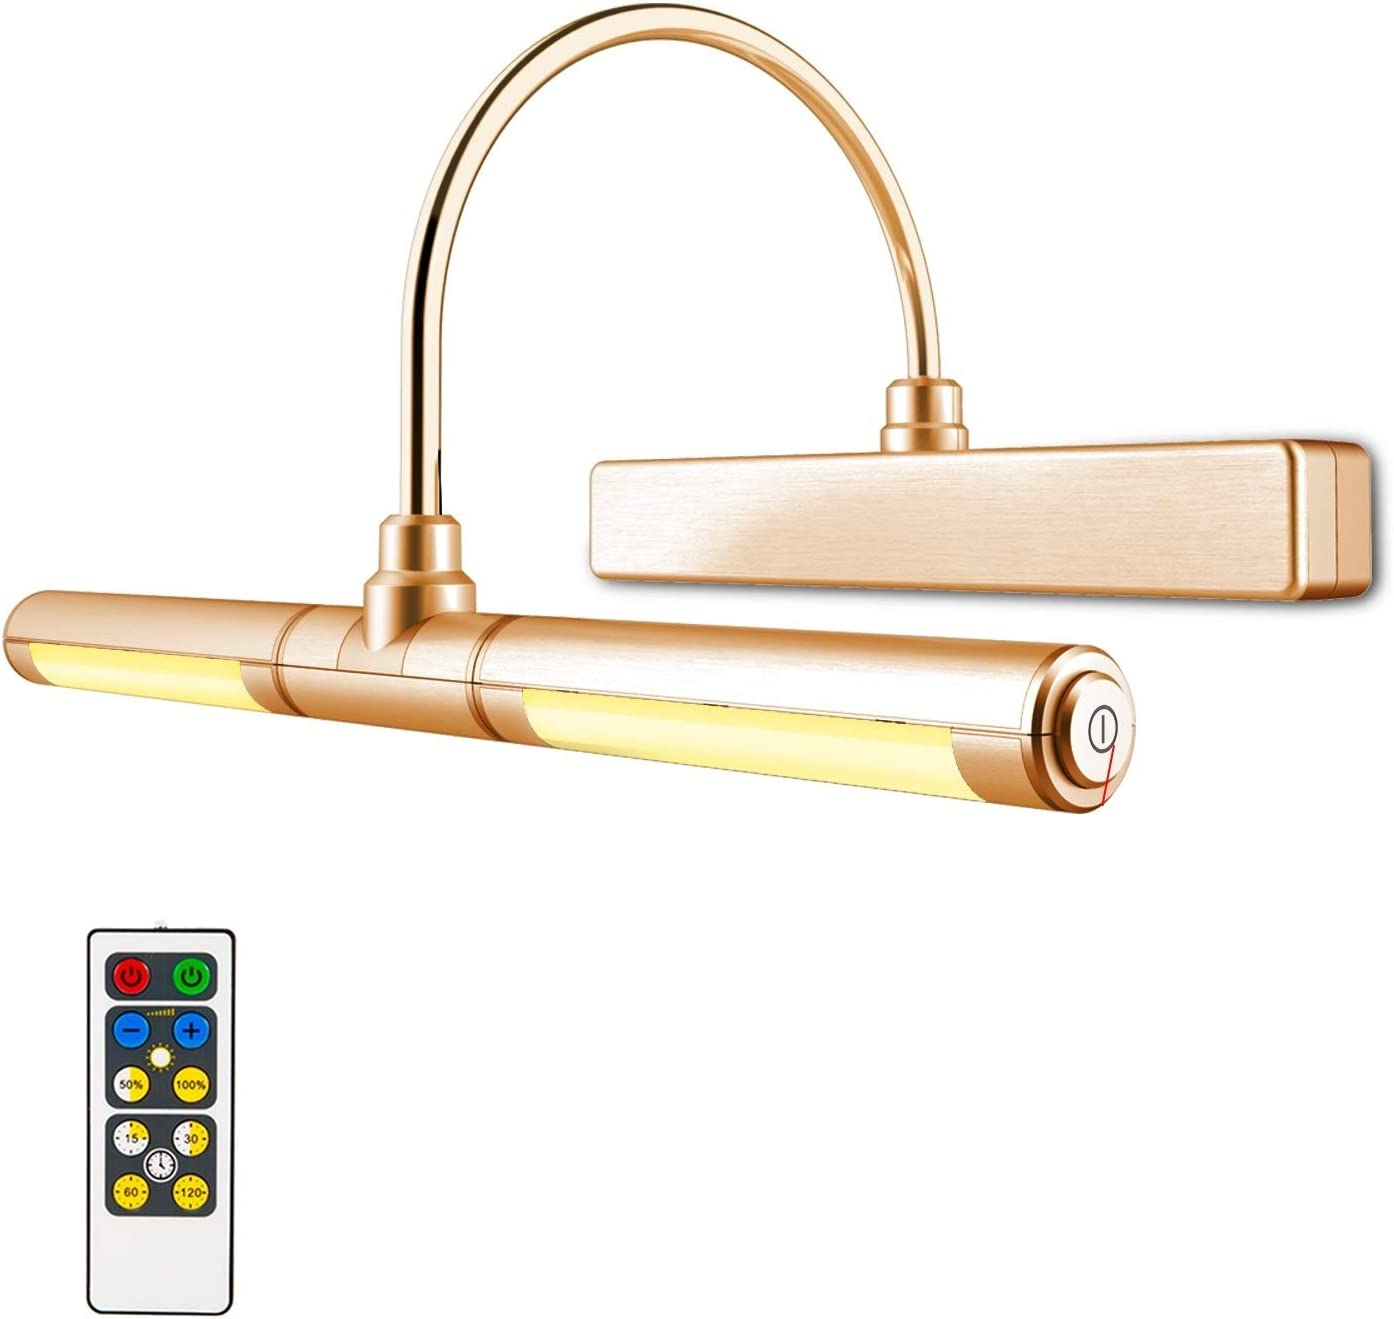 Shop LUXSWAY Wireless Picture Light from Amazon on Openhaus